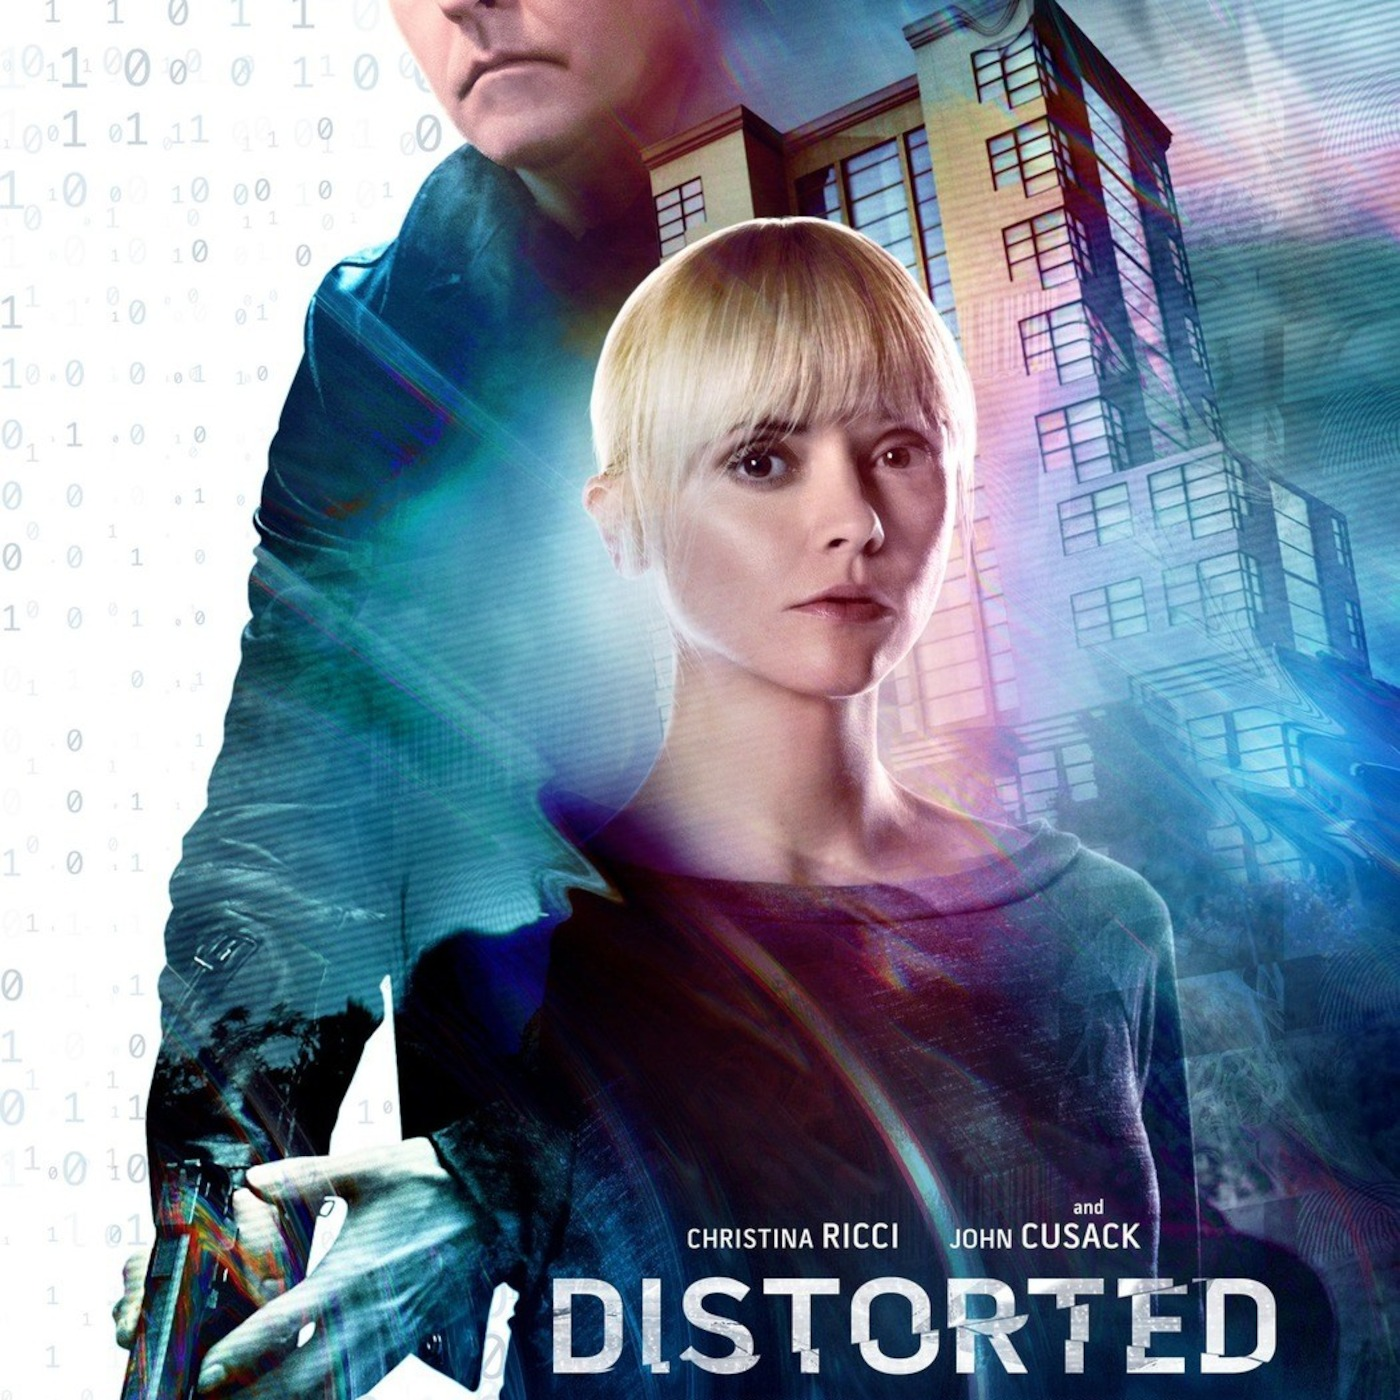 Distorted 2018 HD Movie Counter